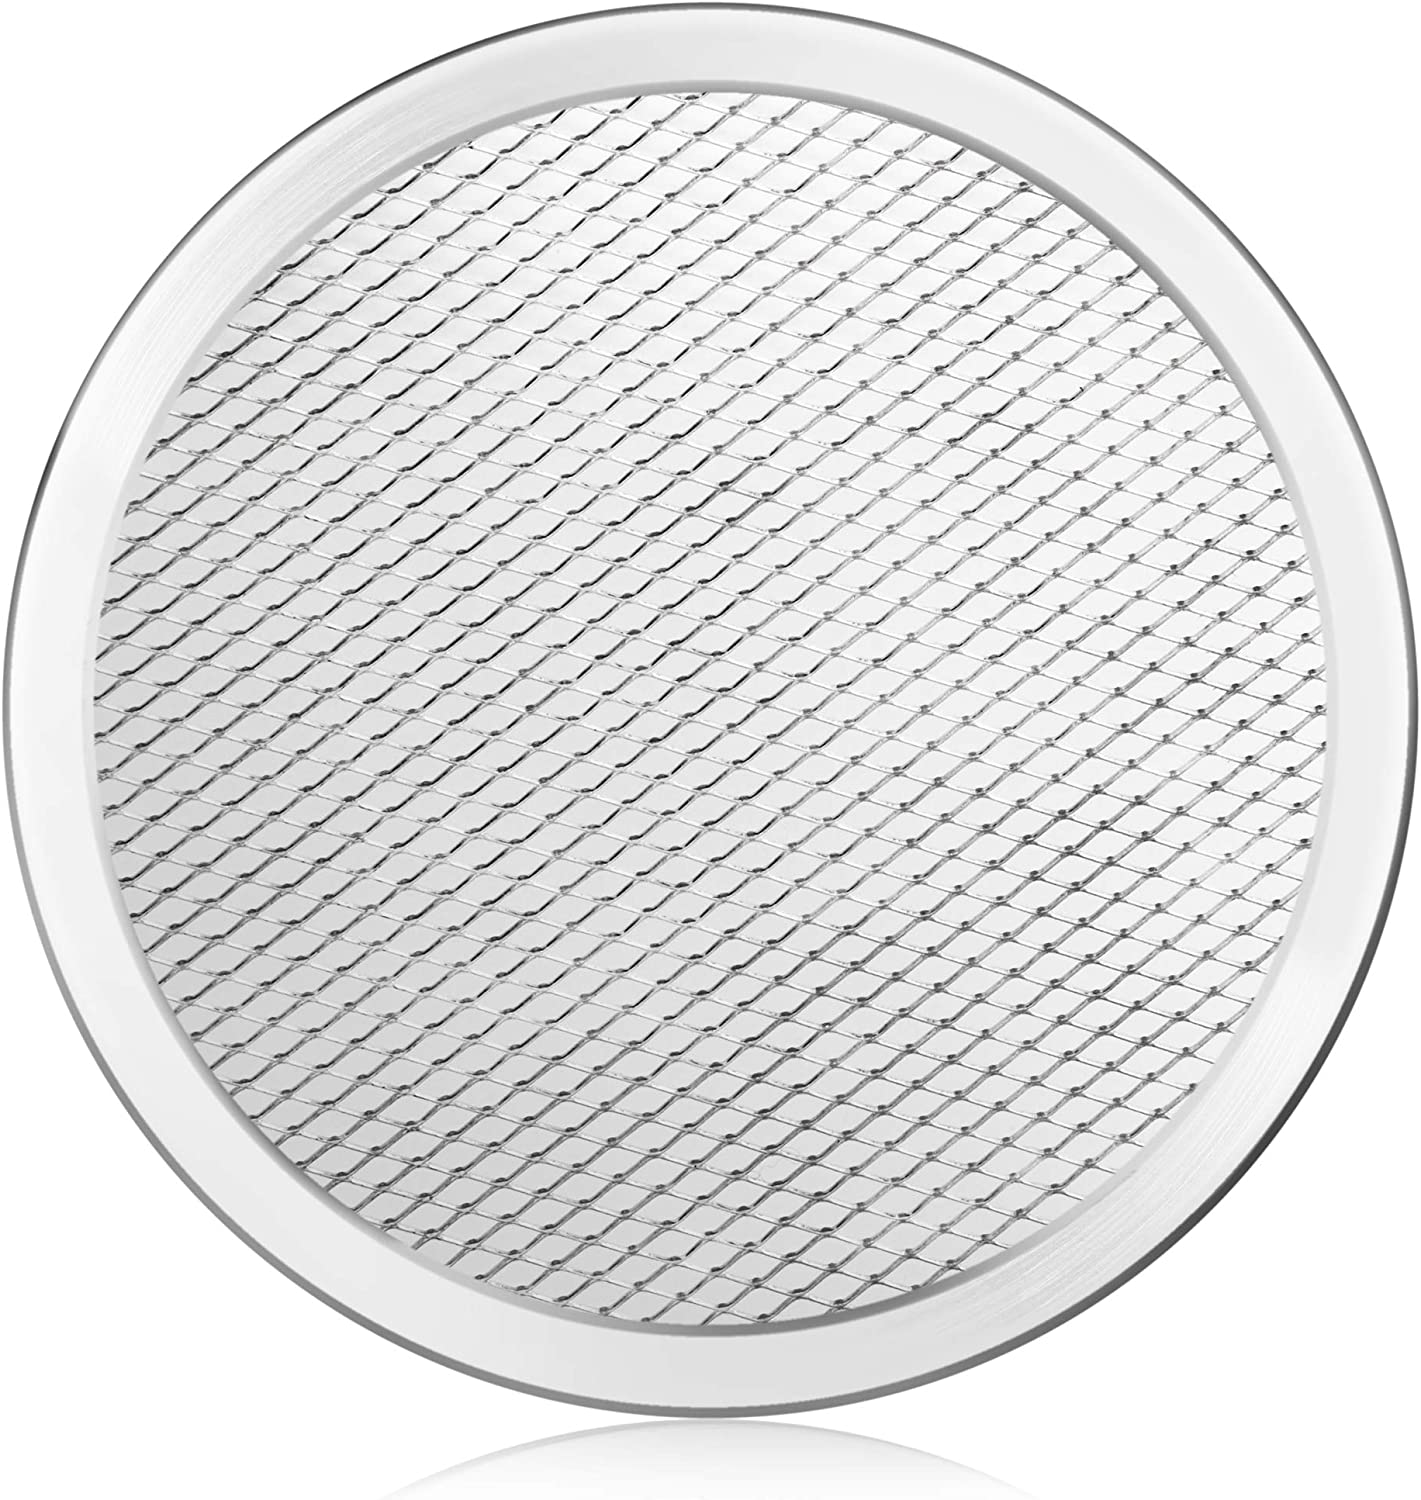 New Star Foodservice 50936 Seamless Aluminum Pizza Screen, Commercial Grade, 8-Inch, Pack of 6